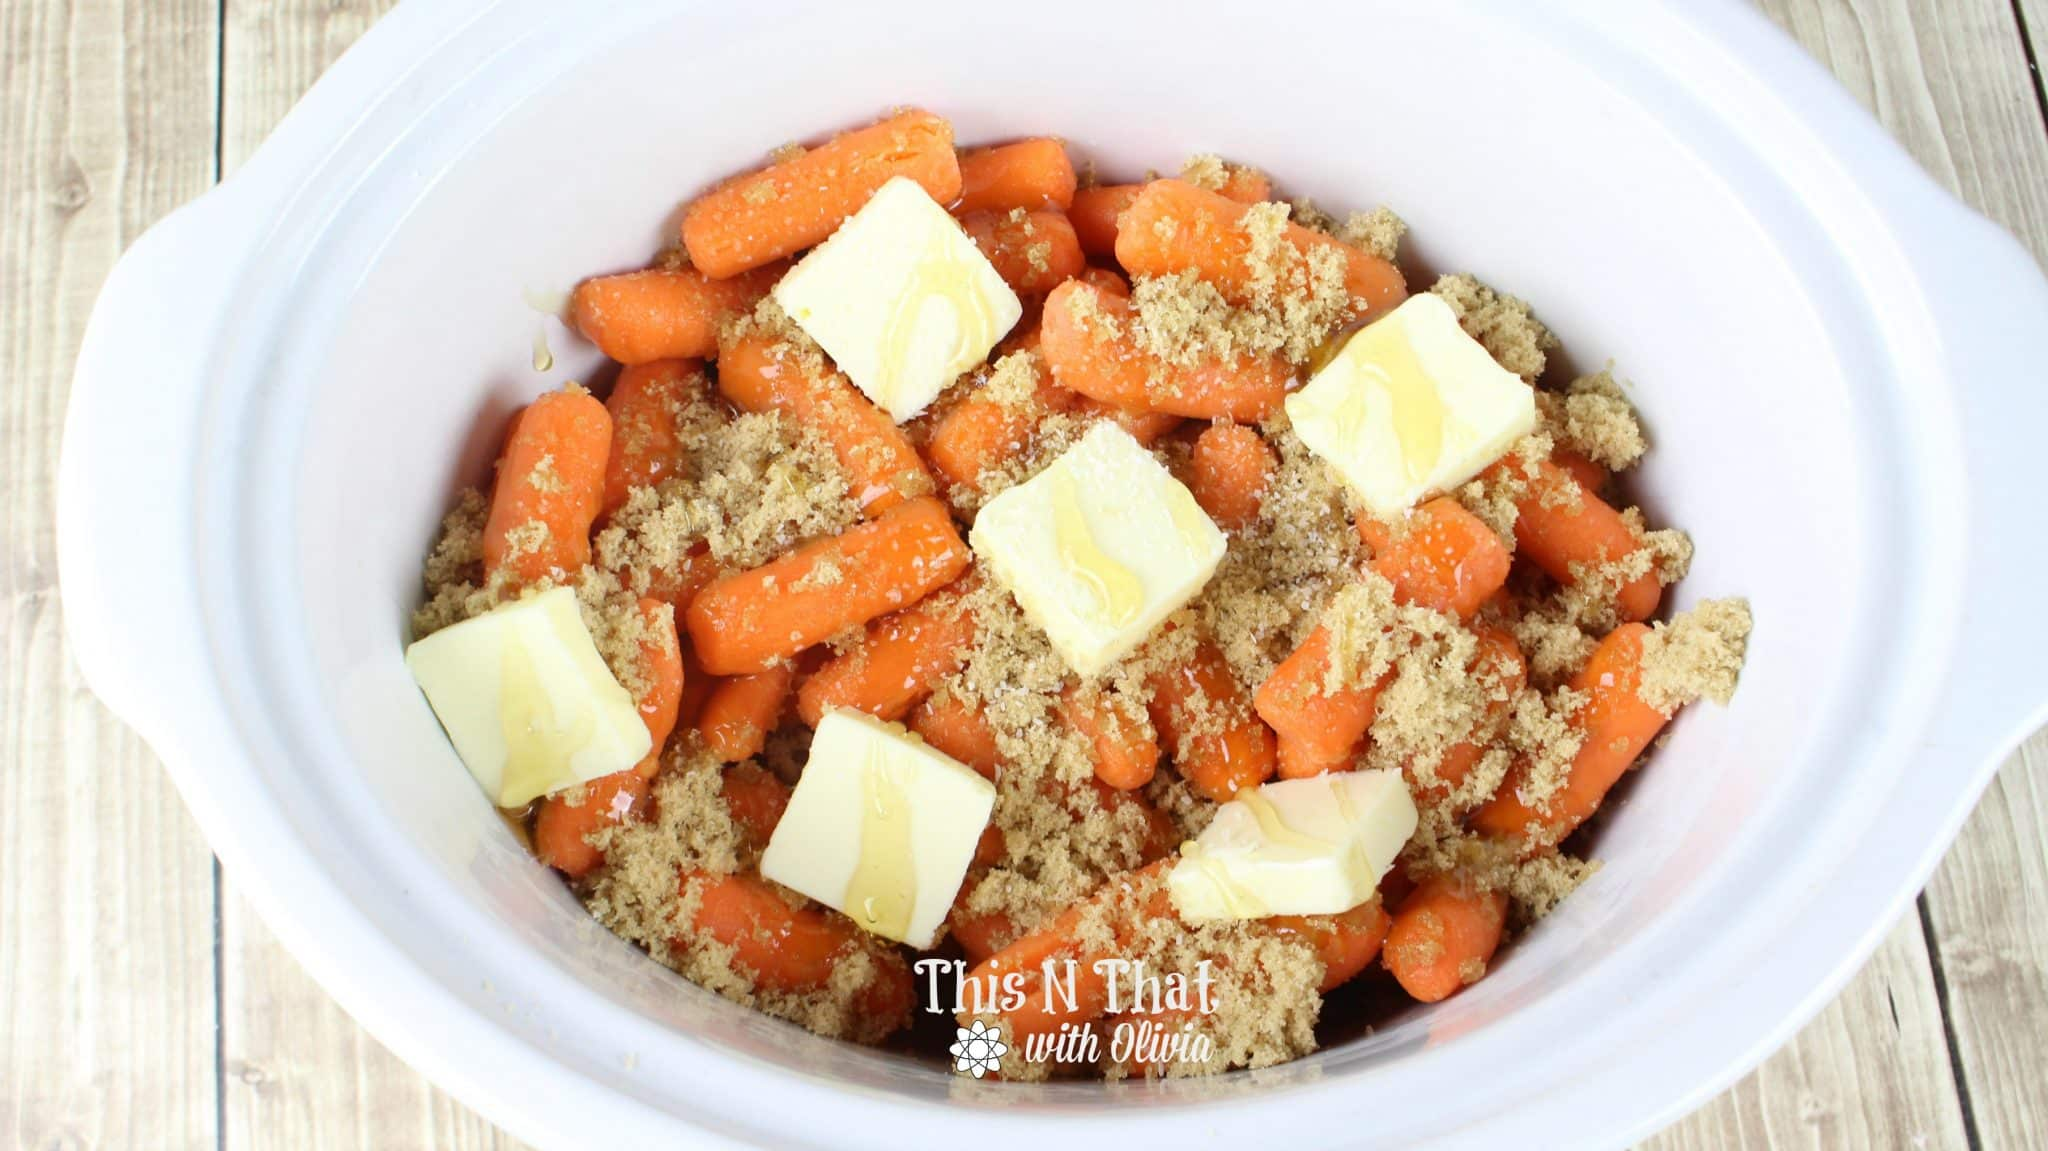 Honey and Brown Sugar Glazed Crockpot Carrots